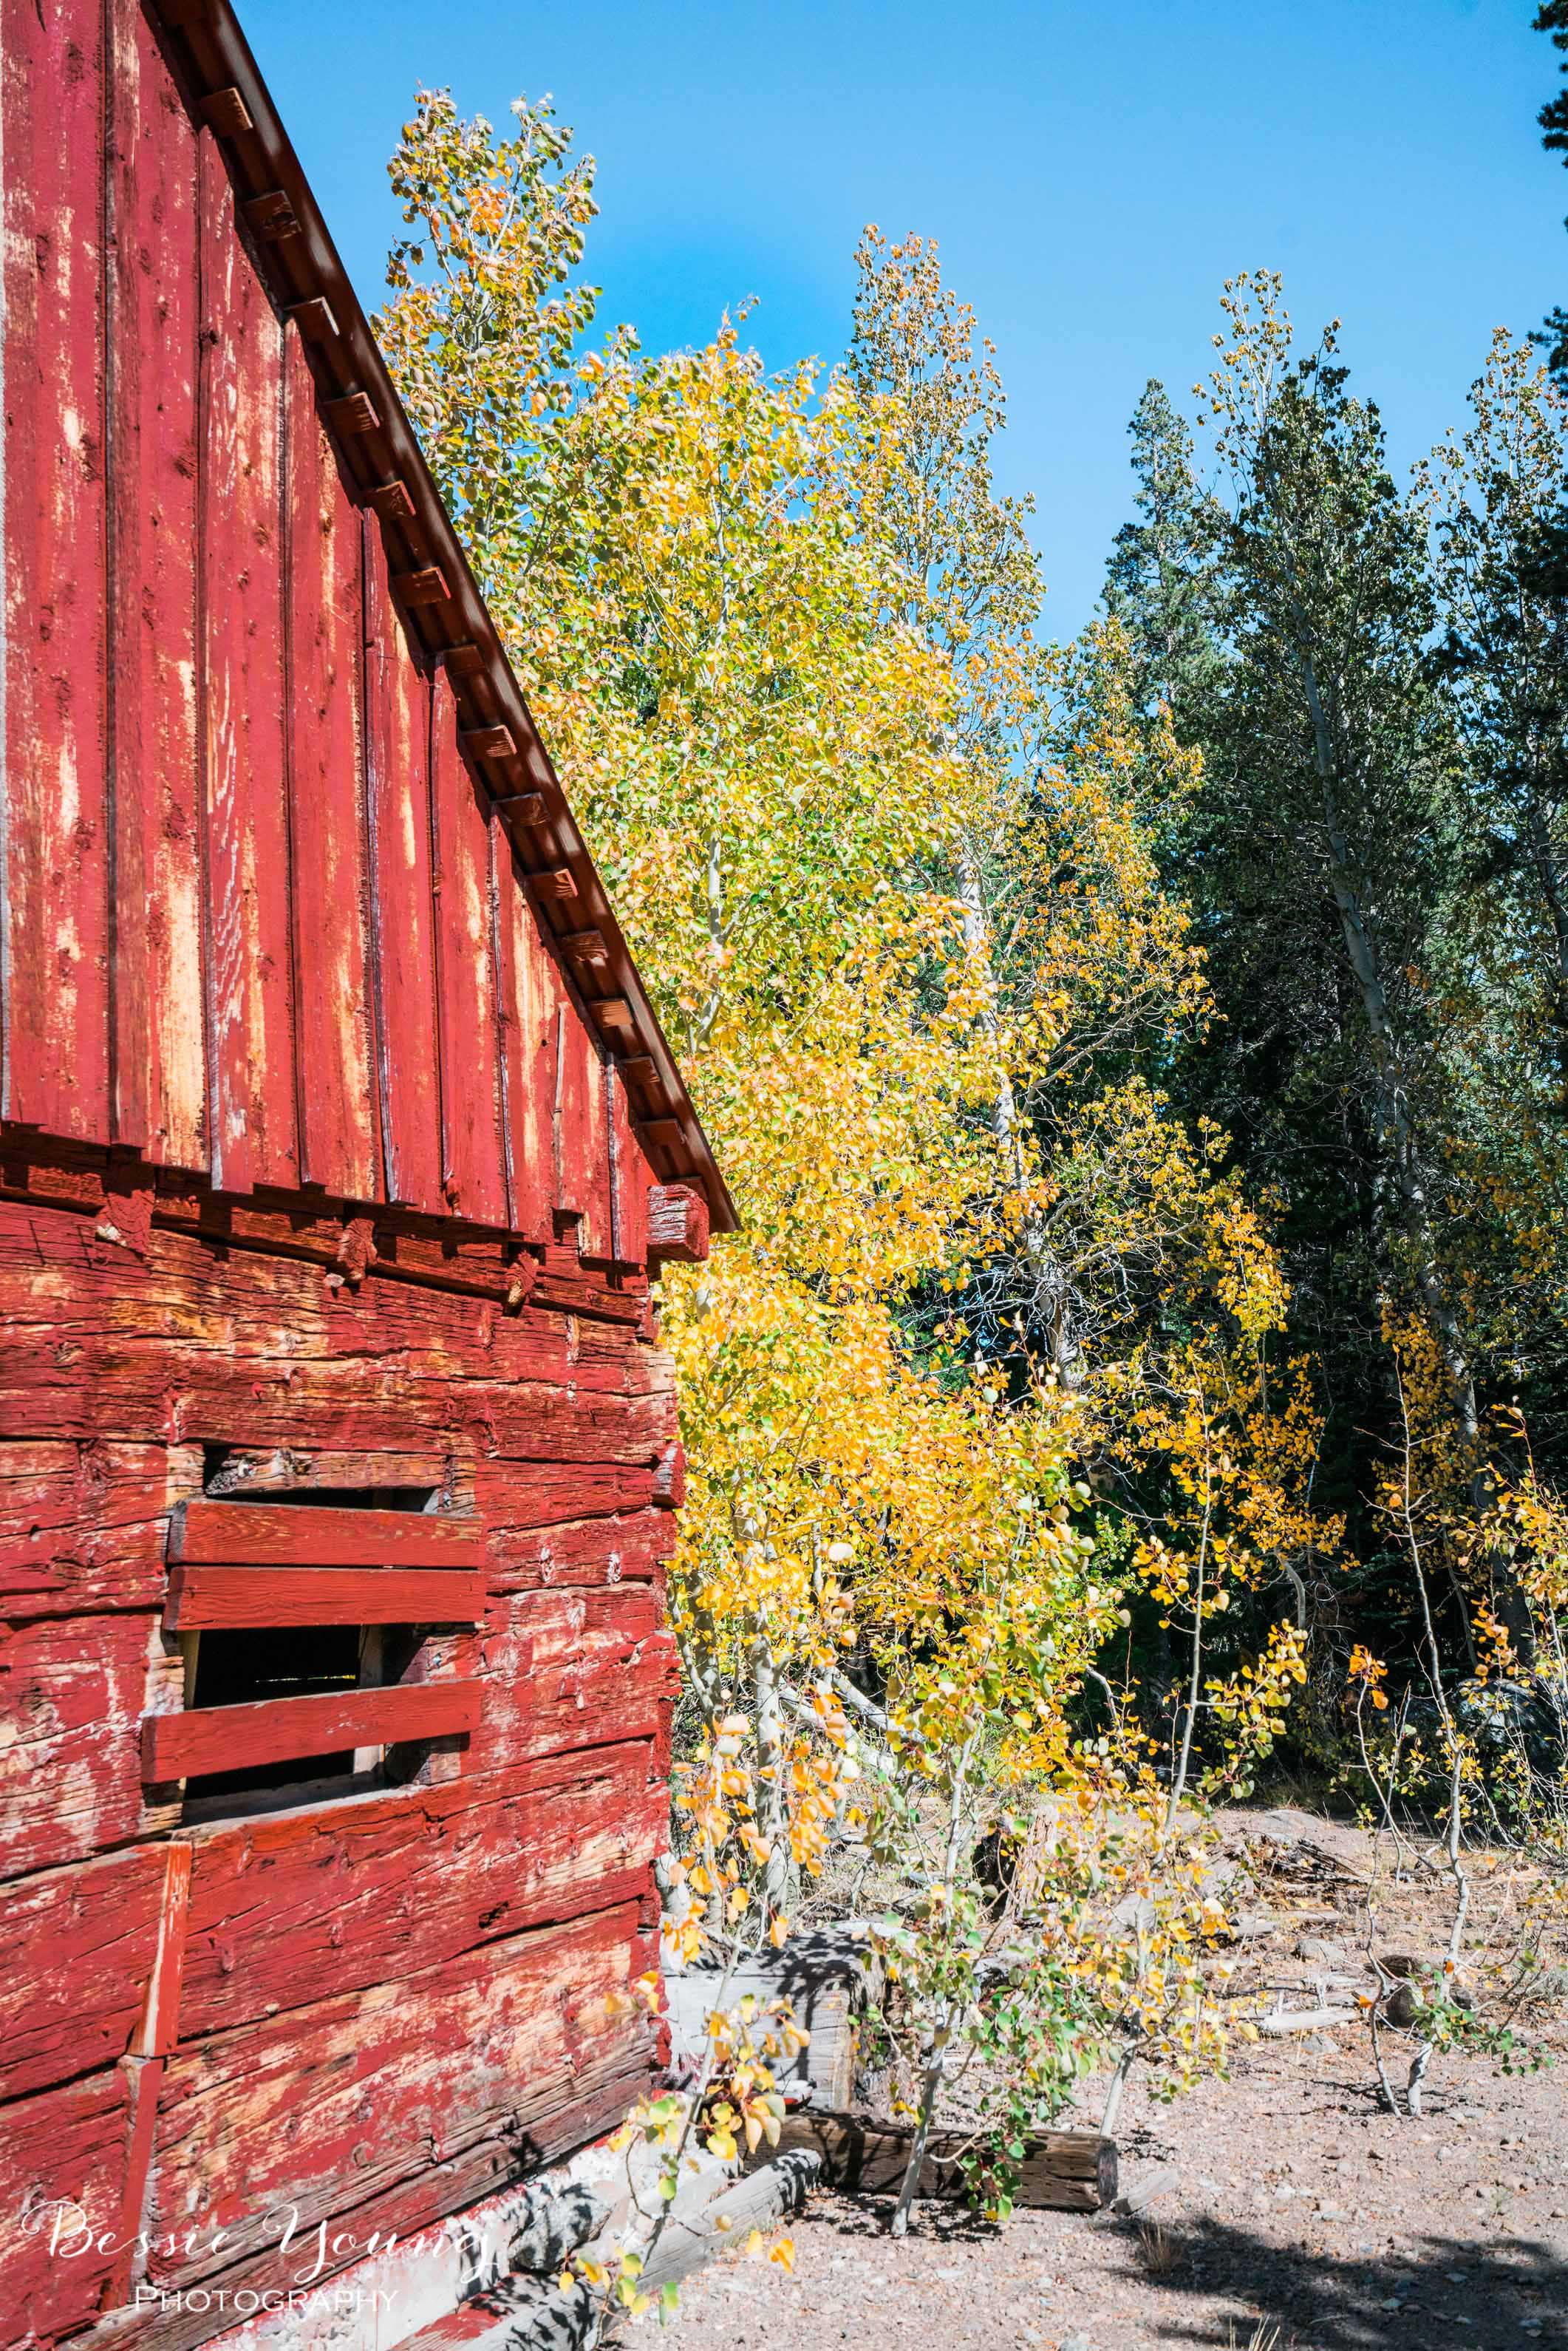 Hope Valley October 2016 - Bessie Young Photography-44.jpg